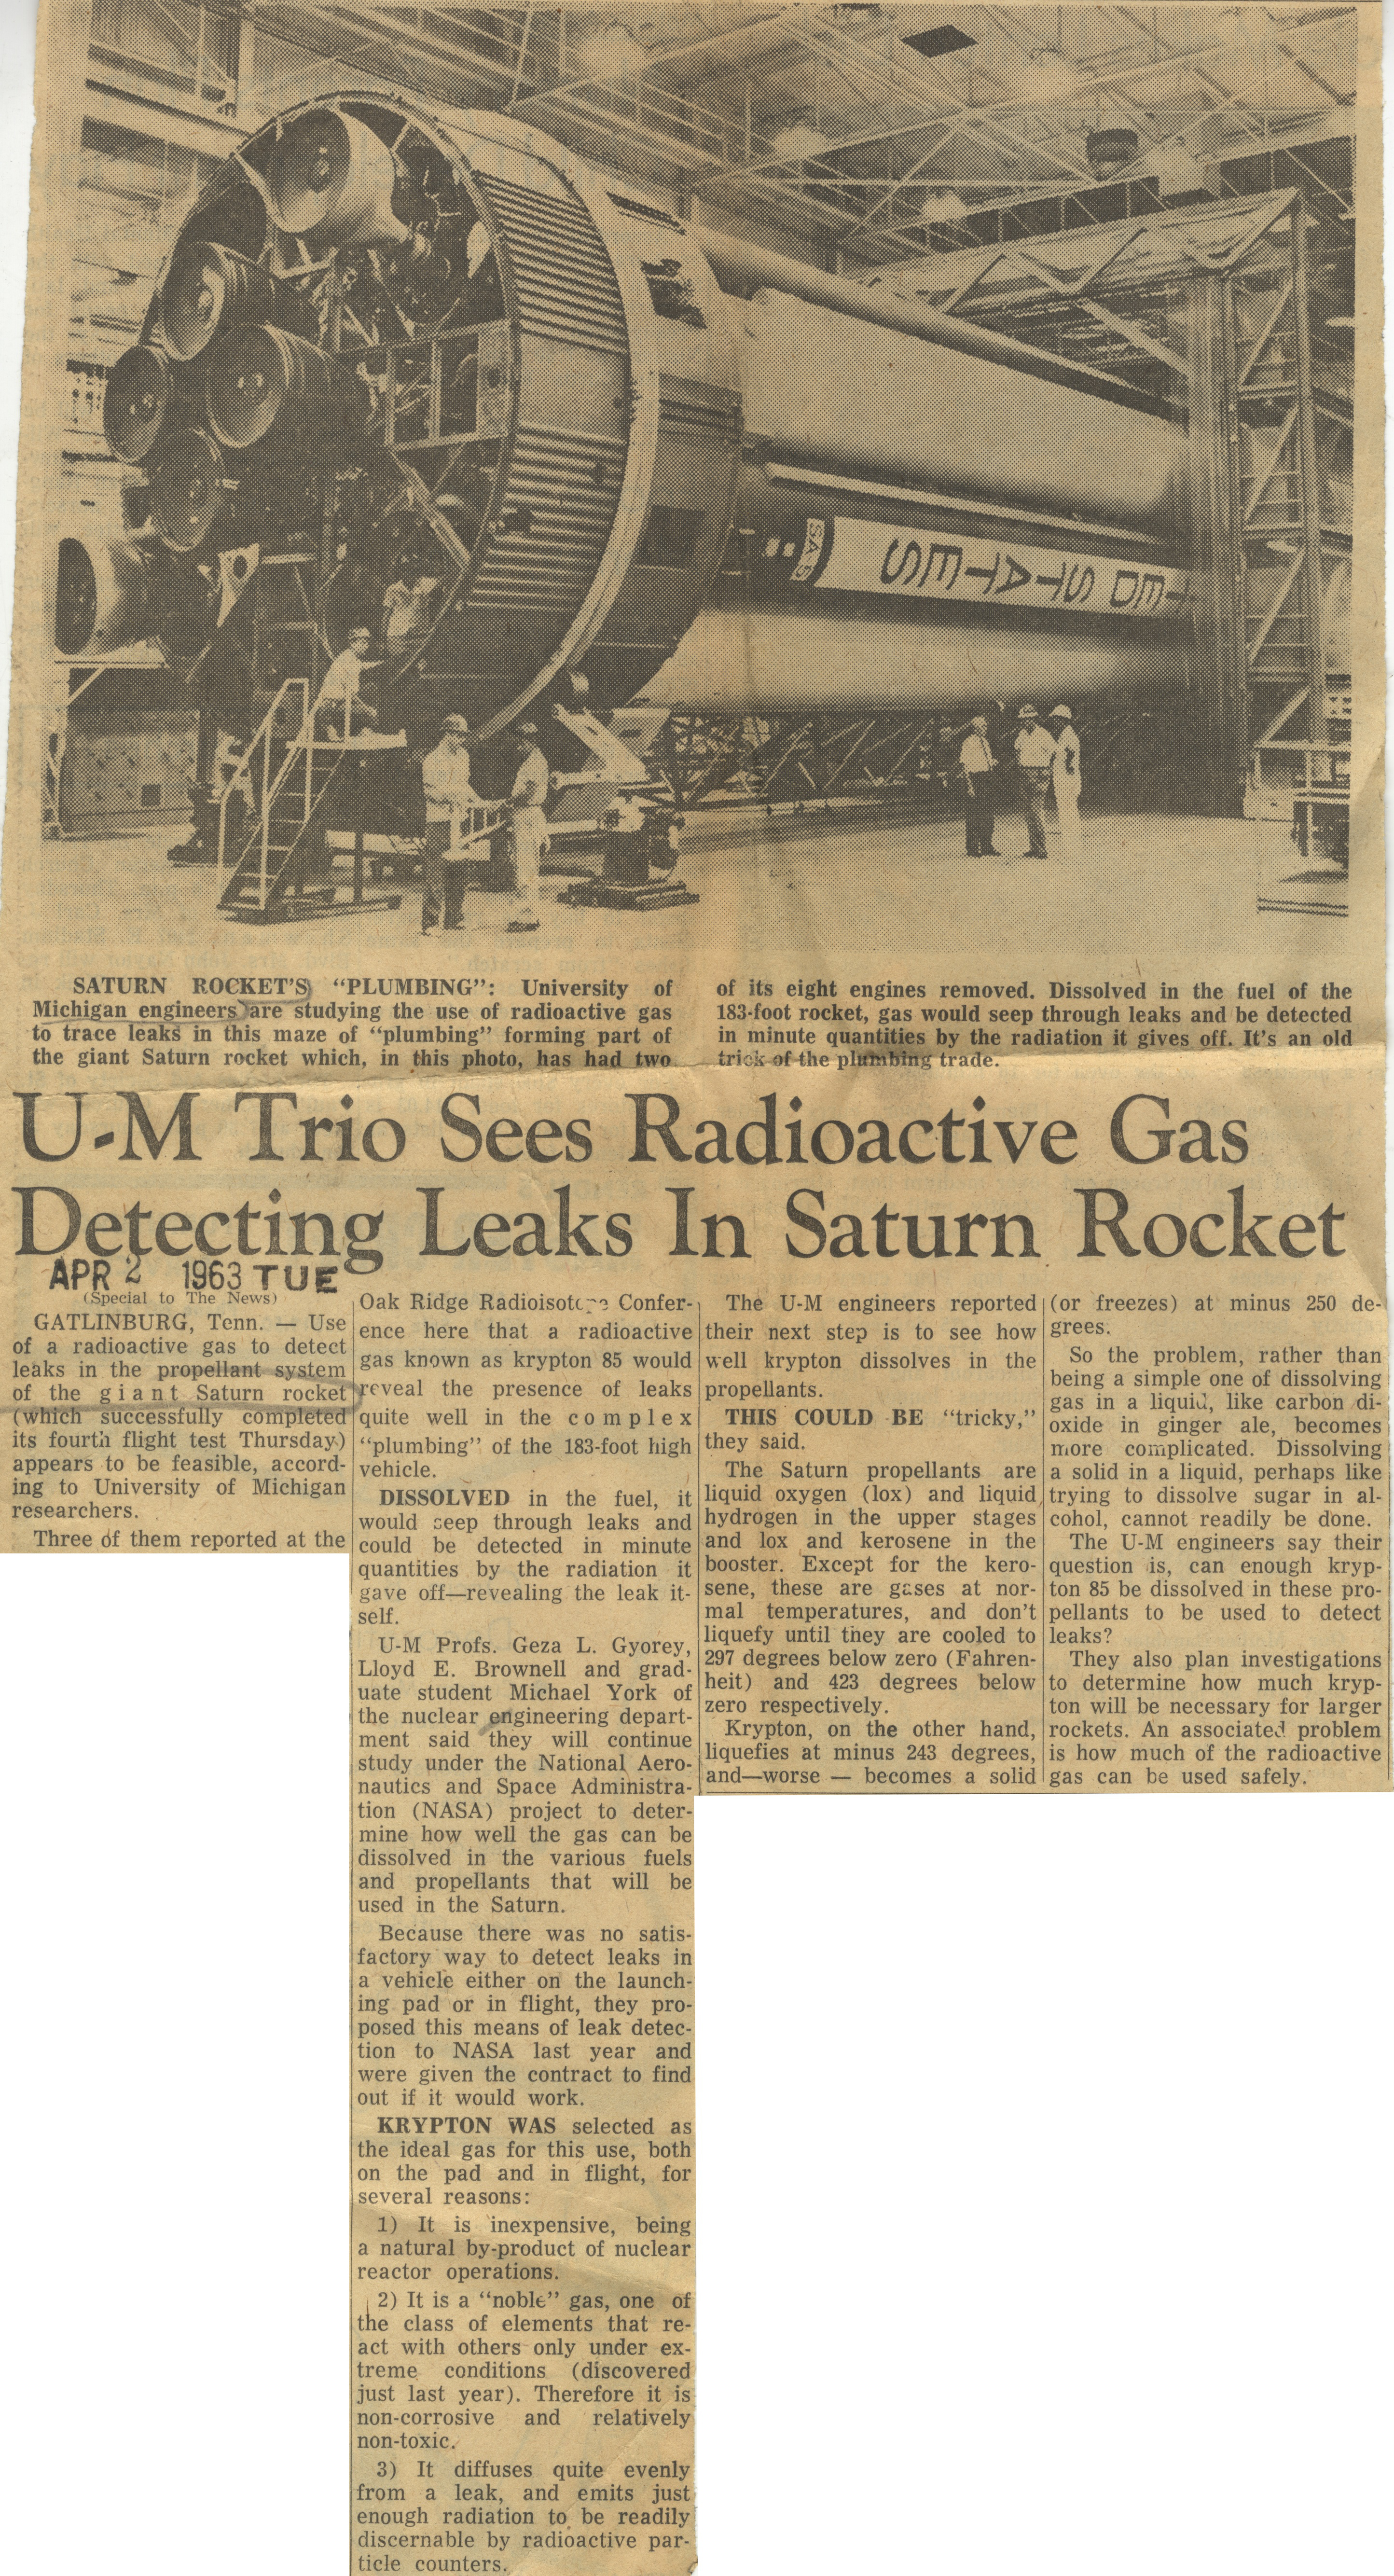 U-M Trio Sees Radioactive Gas Detecting Leaks In Saturn Rocket image